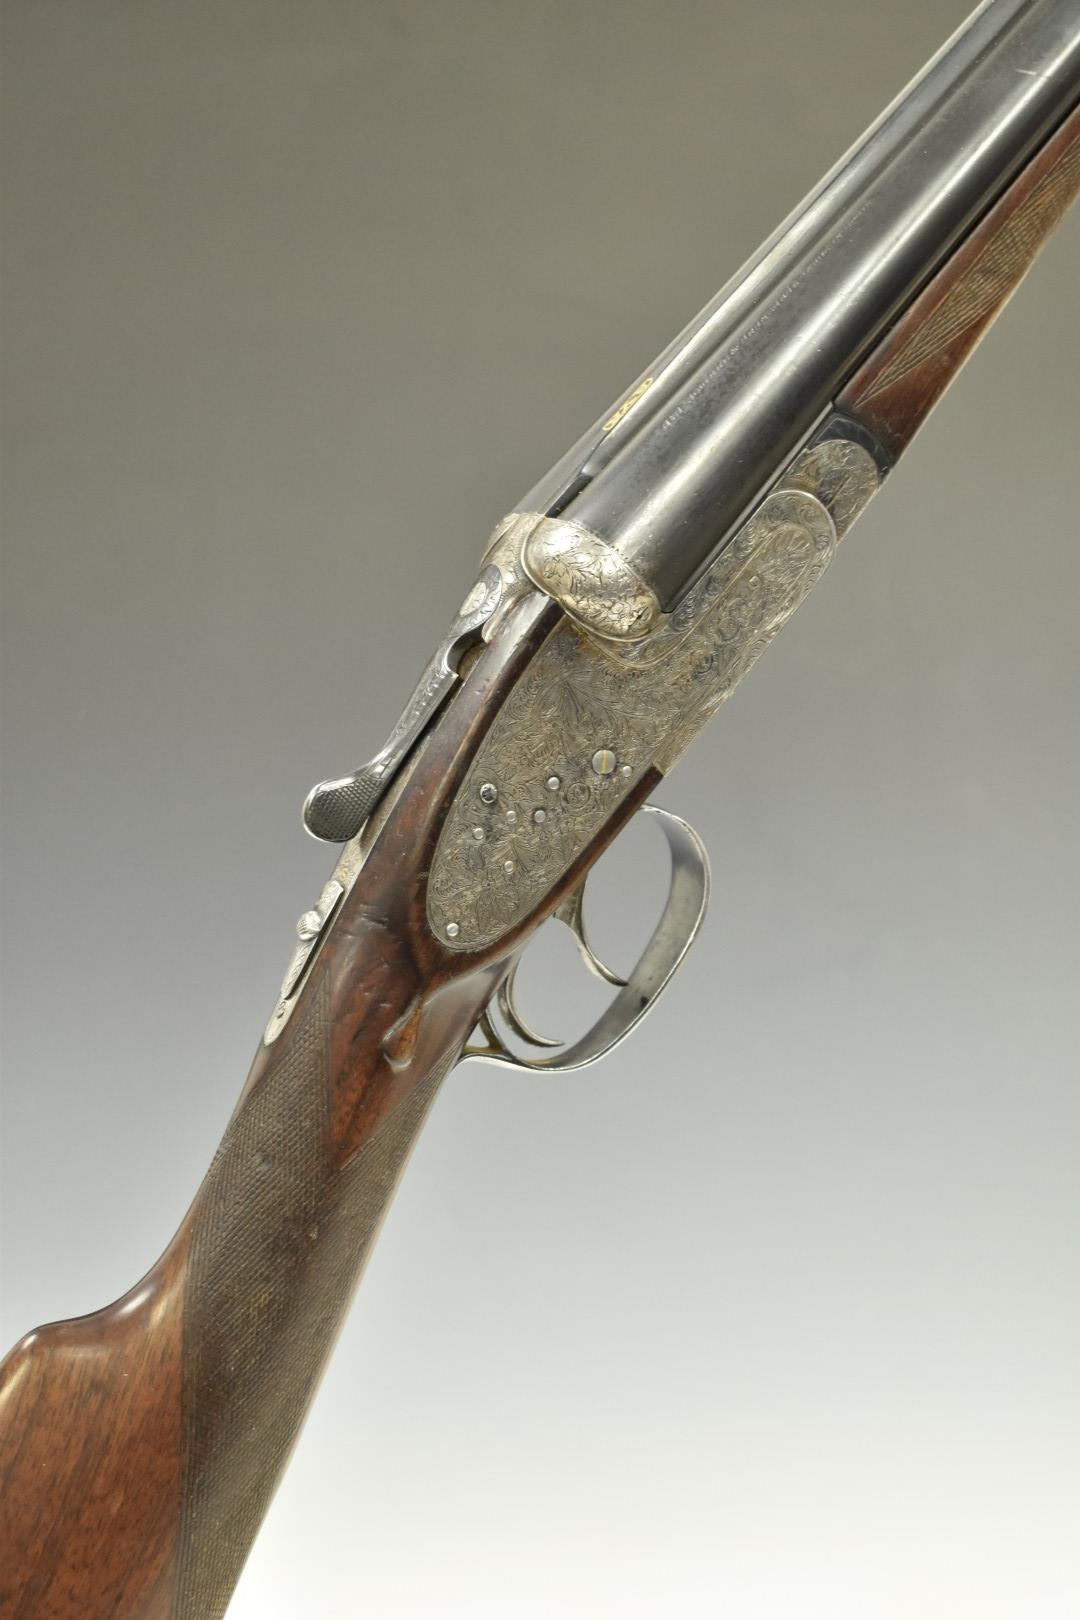 AYA XXV sidelock side by side ejector shotgun with hand detachable locks, all over floral and